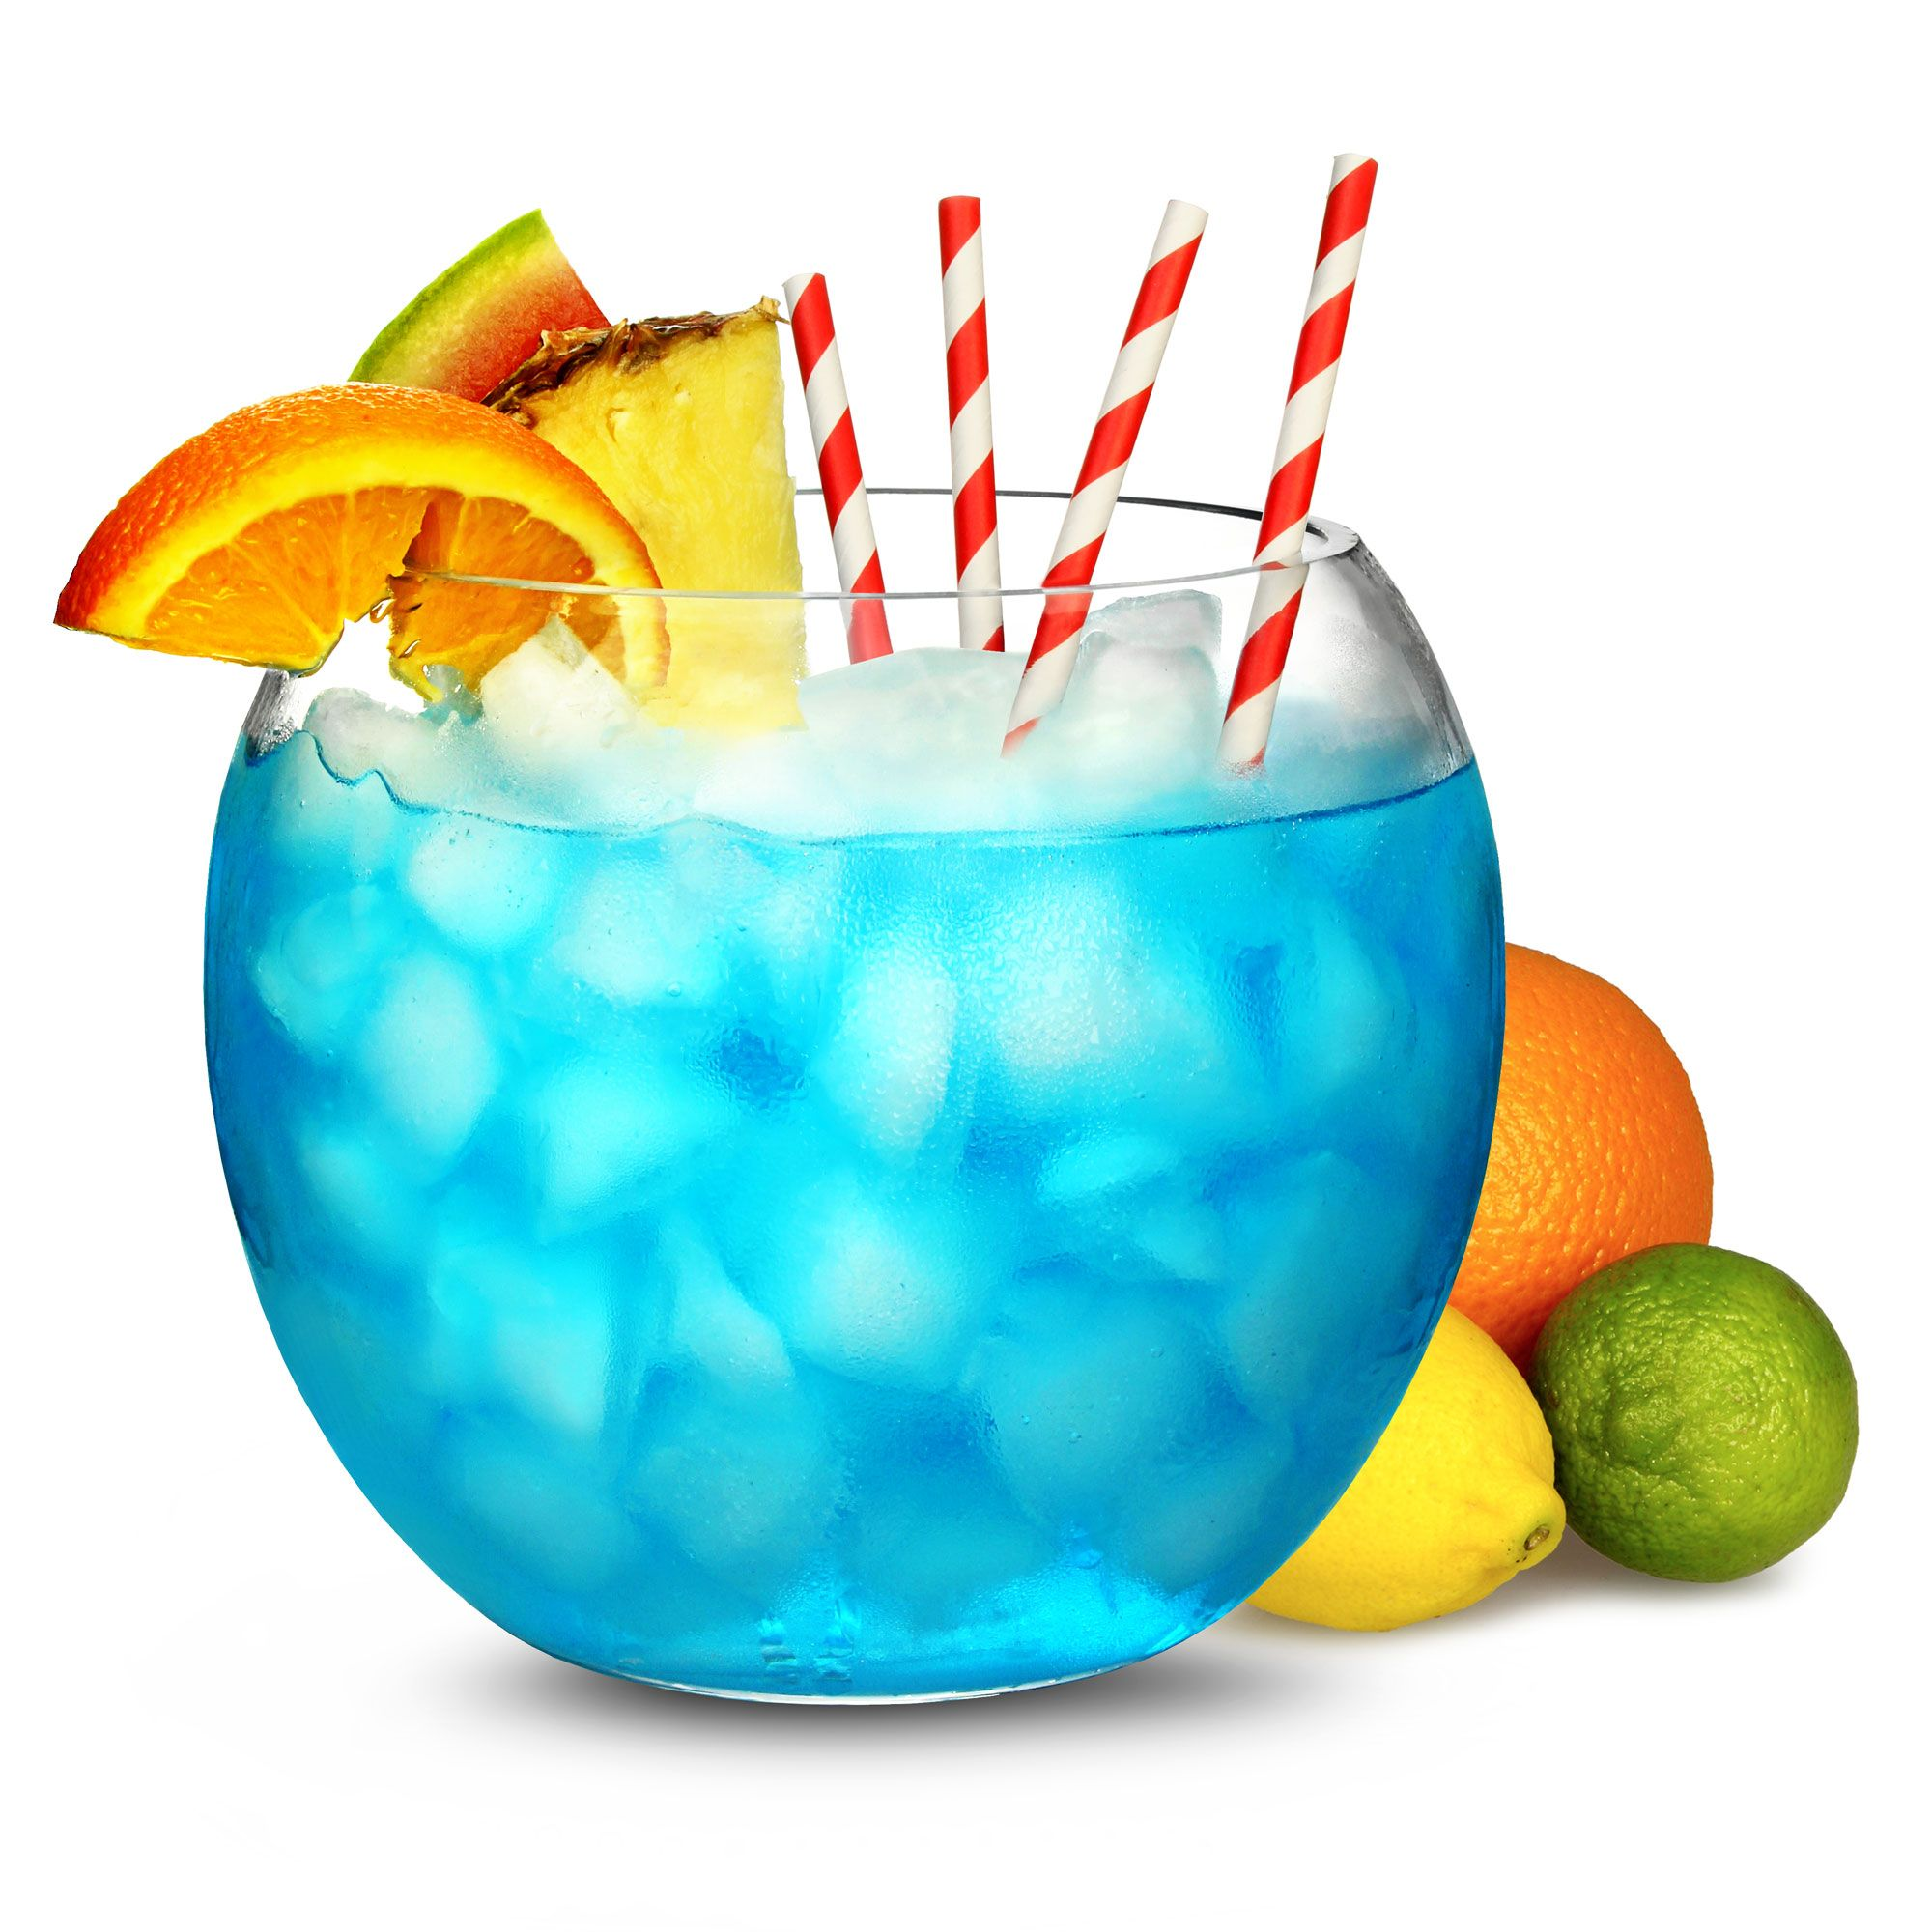 Margarita drinks glass cocktail fish bowl 92oz for Fish bowl punch